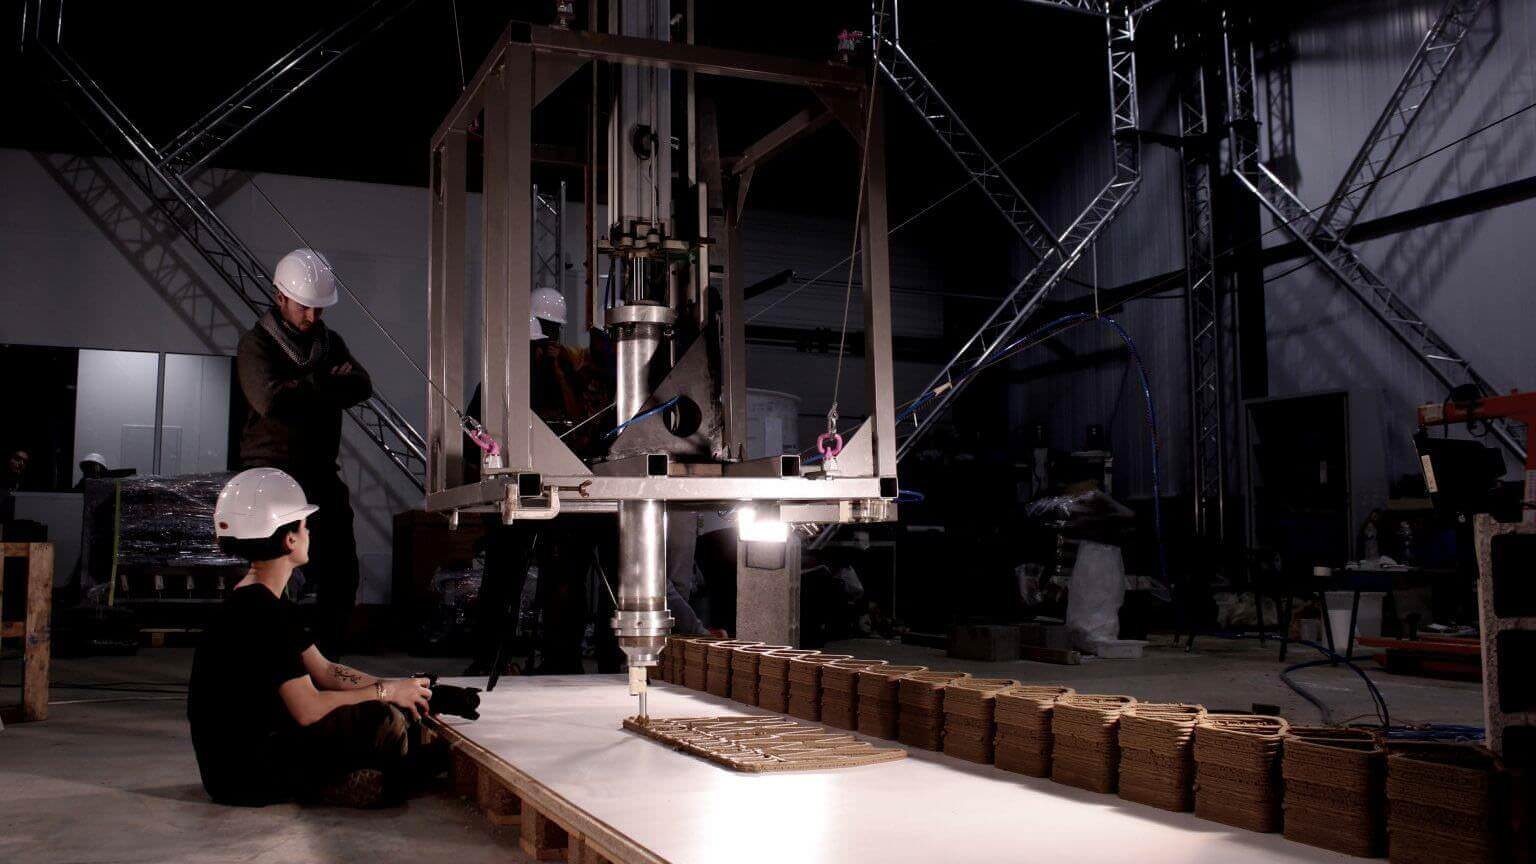 The Cogiro Construction Robot Can 3D Print Buildings | All3DP